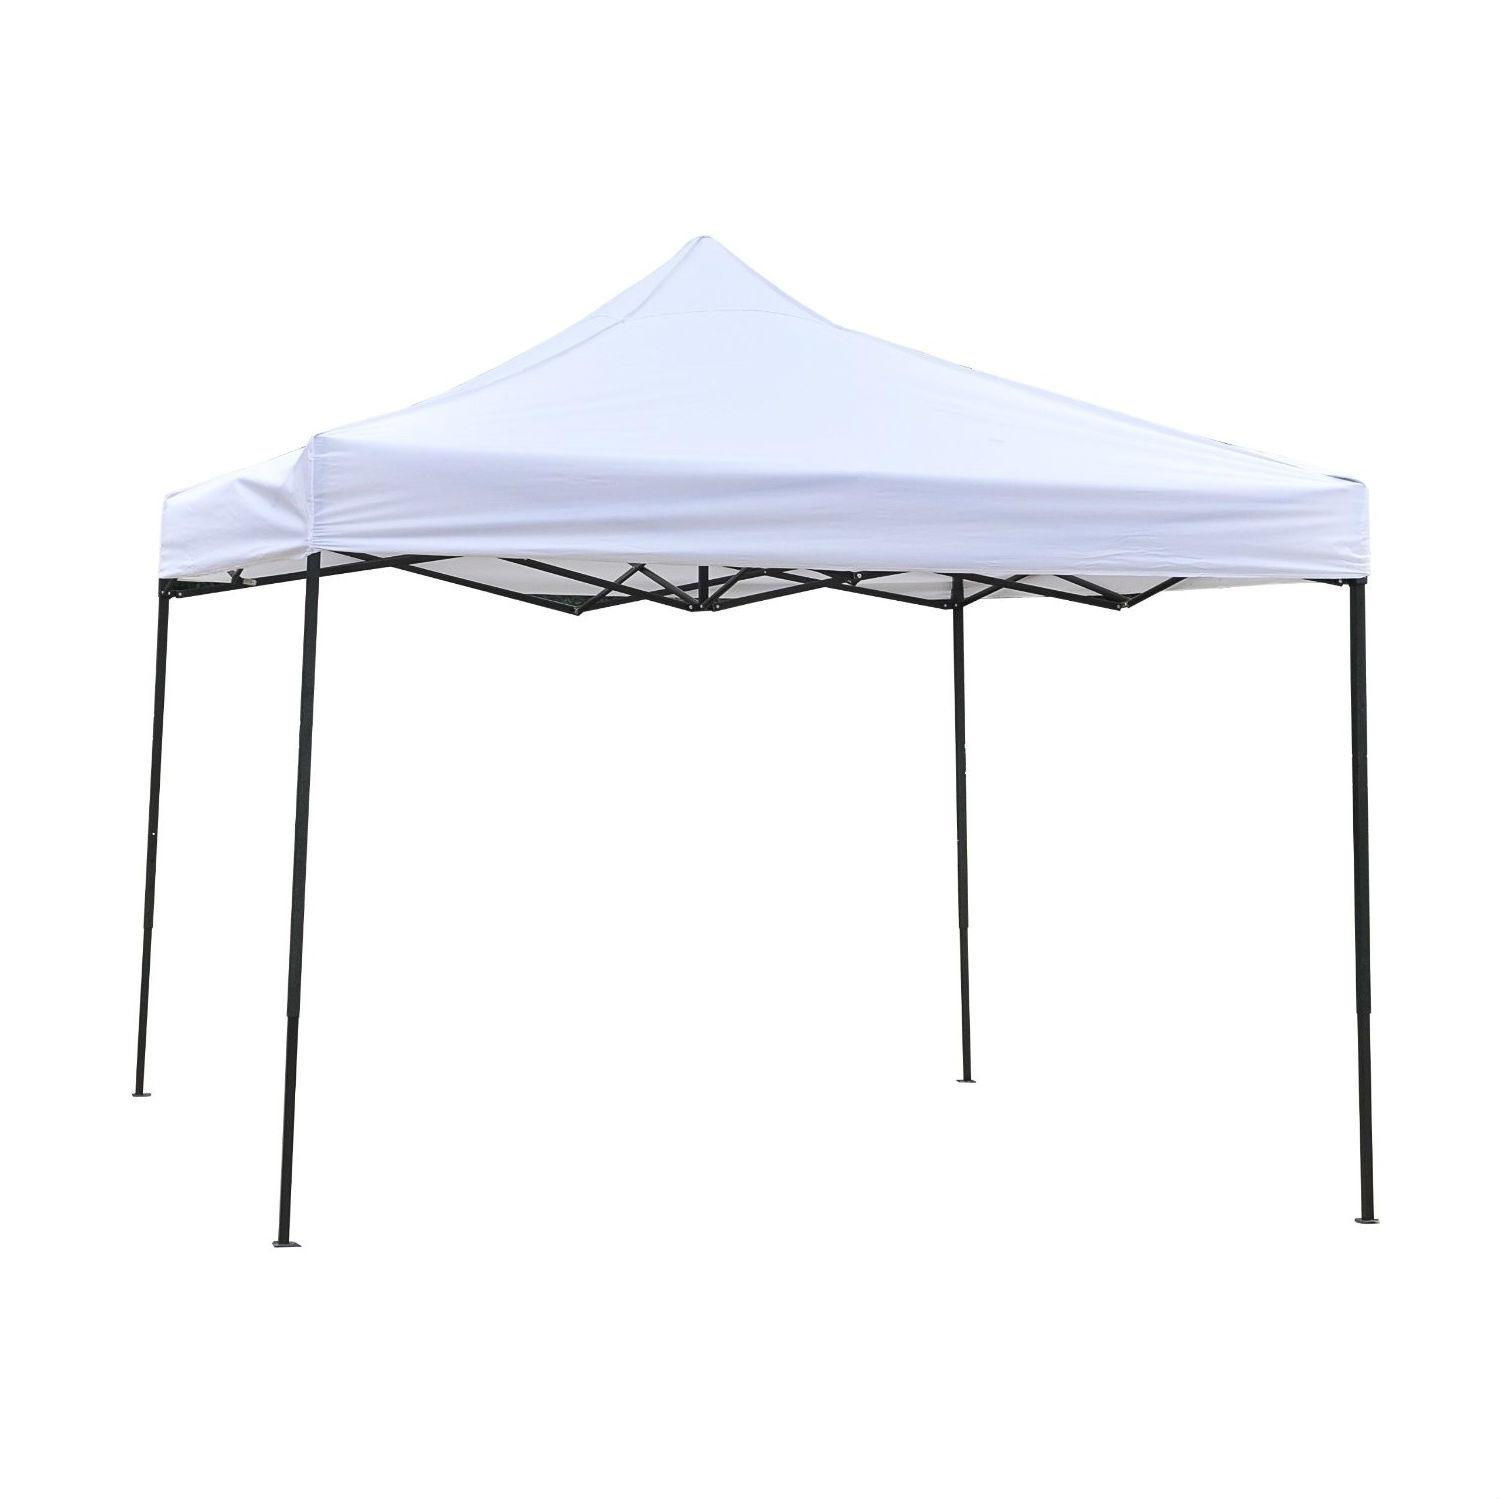 White 10-Ft x 10-Ft Outdoor Water Resistant Canopy with Steel Frame  sc 1 st  FastFurnishings.com & White 10-Ft x 10-Ft Outdoor Water Resistant Canopy with Steel ...